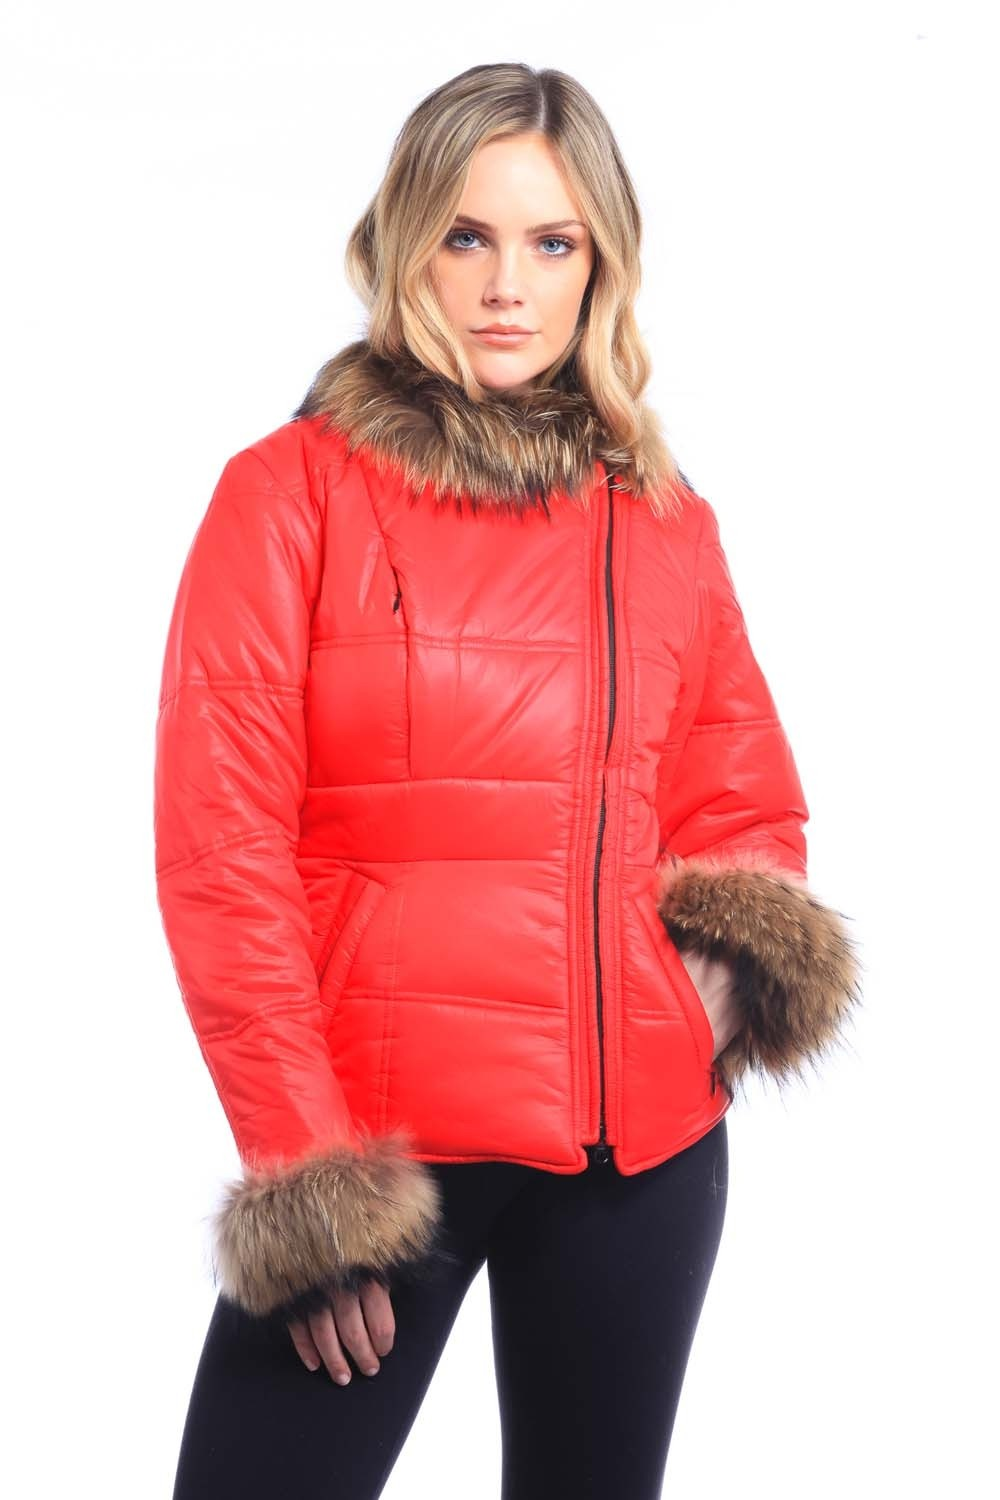 Westmount Jacket For Women